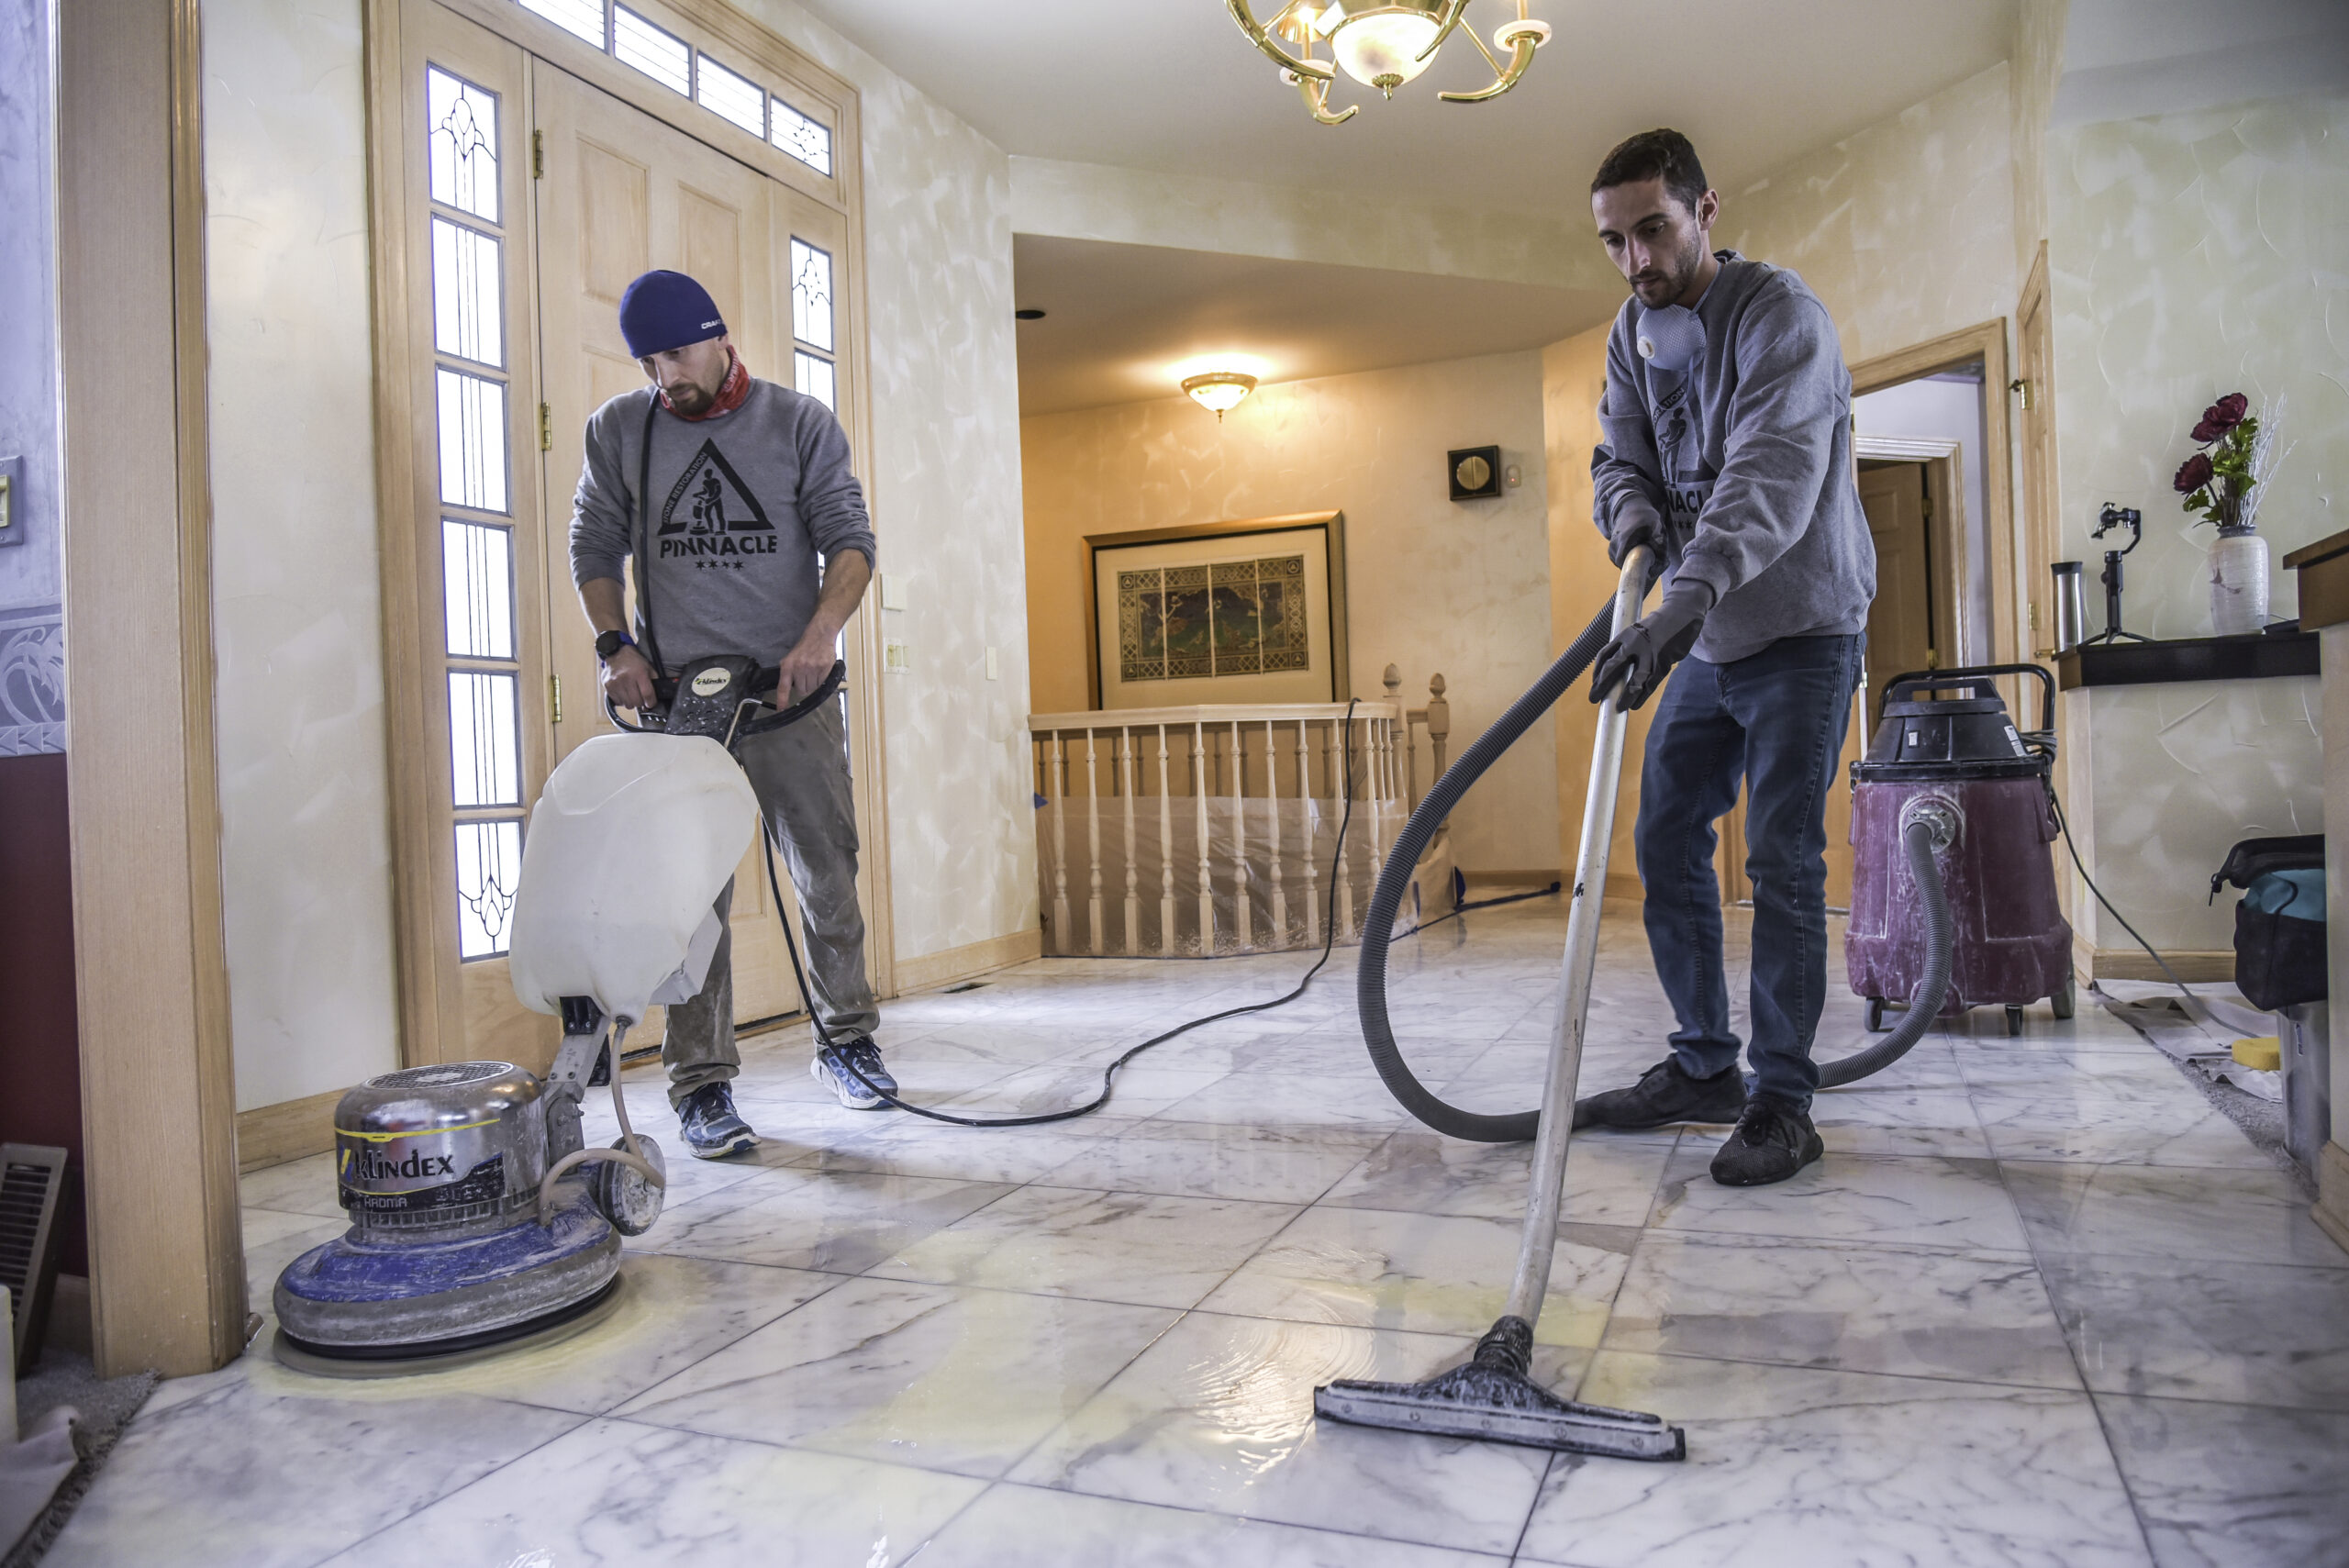 DO YOU NEED MARBLE FLOOR POLISHING? MARBLE SHOWER RESTORATION?  TUMBLED TRAVERTINE DEEP CLEANING? PORCELAIN TILE AND GROUT CLEANING? – WE GOT IT ALL COVERED.